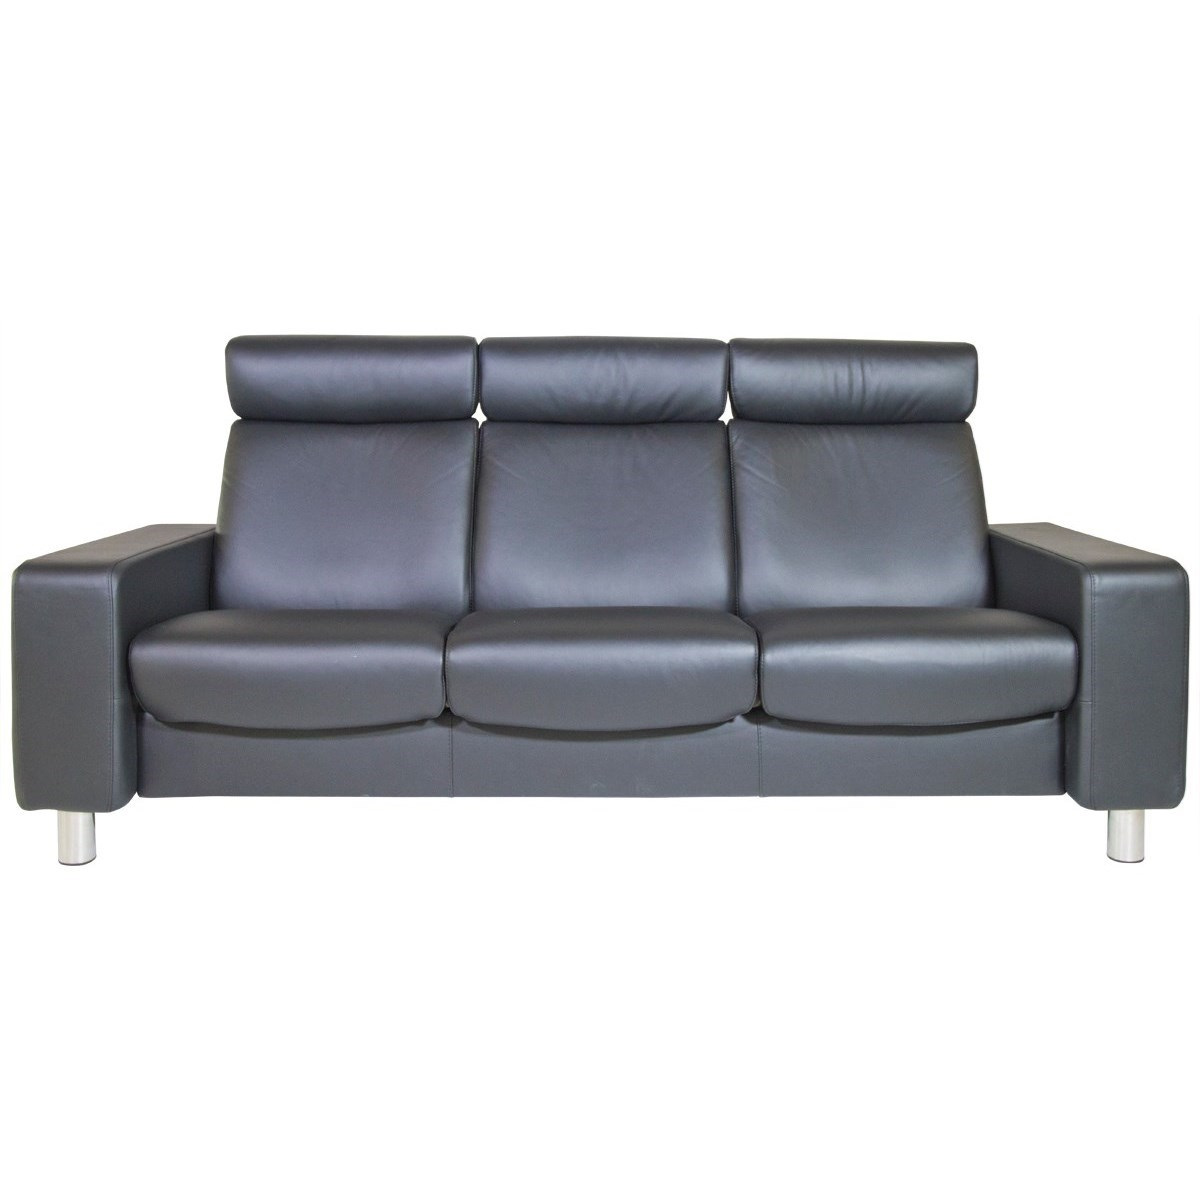 pause modern reclining sectional sofa by palliser stockists manchester stressless 1417030 high back